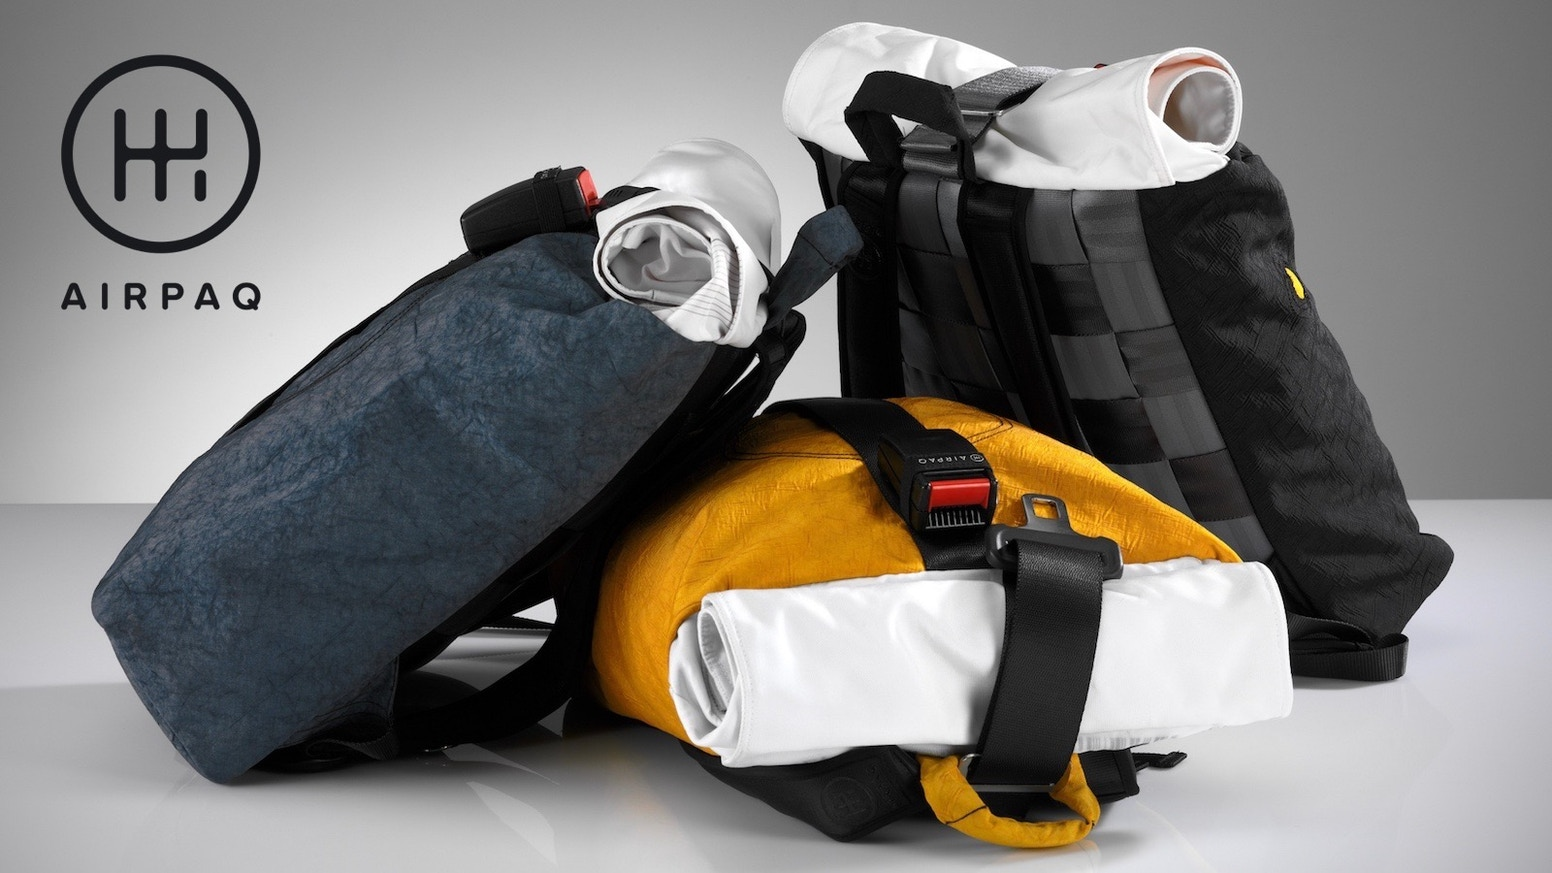 e4891304cb81 Airpaq - The Backpack Made From Airbags and Seat Belts by Airpaq ...